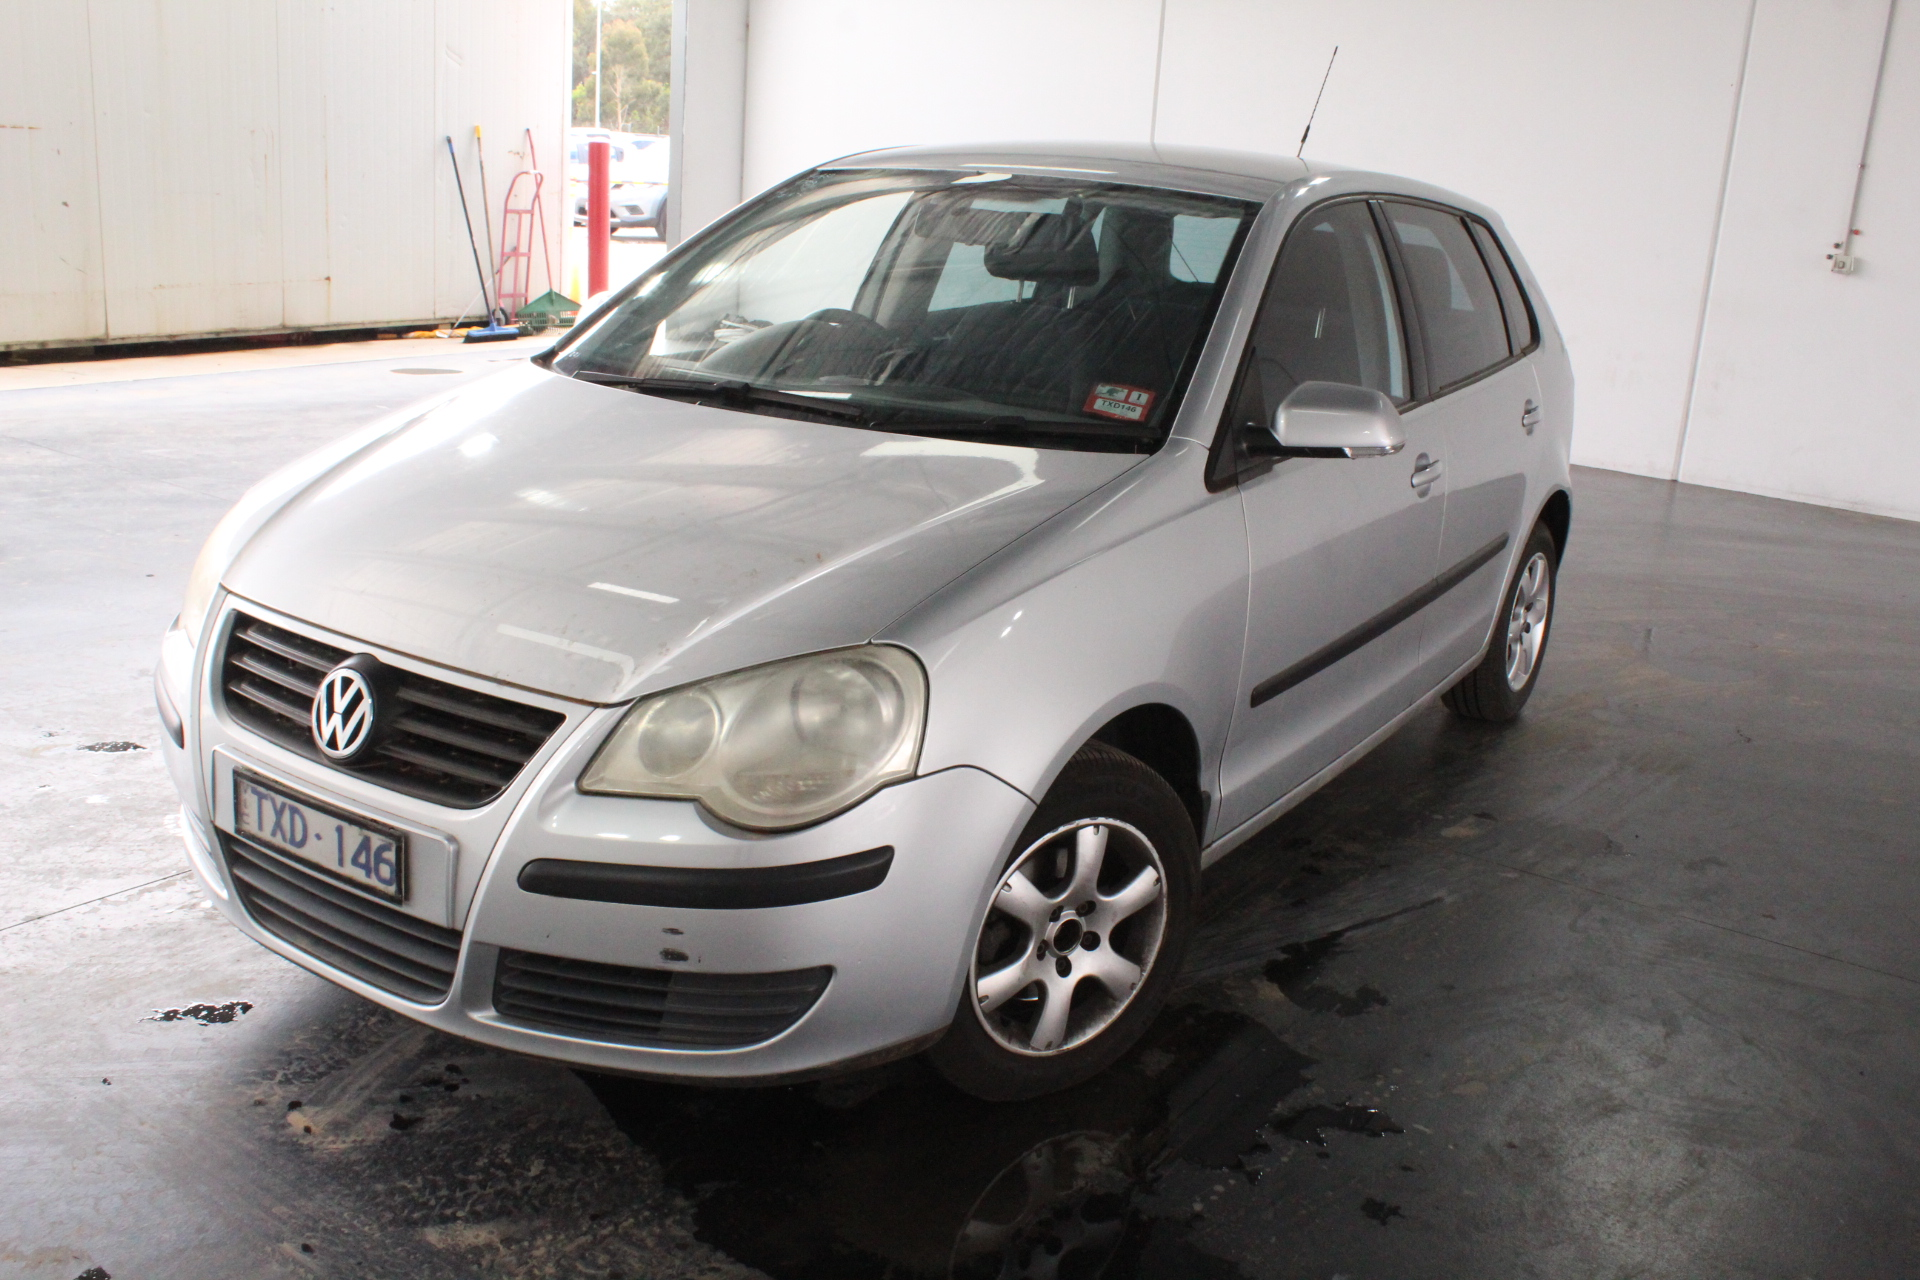 2006 Volkswagen Polo Match 9N Automatic Hatchback